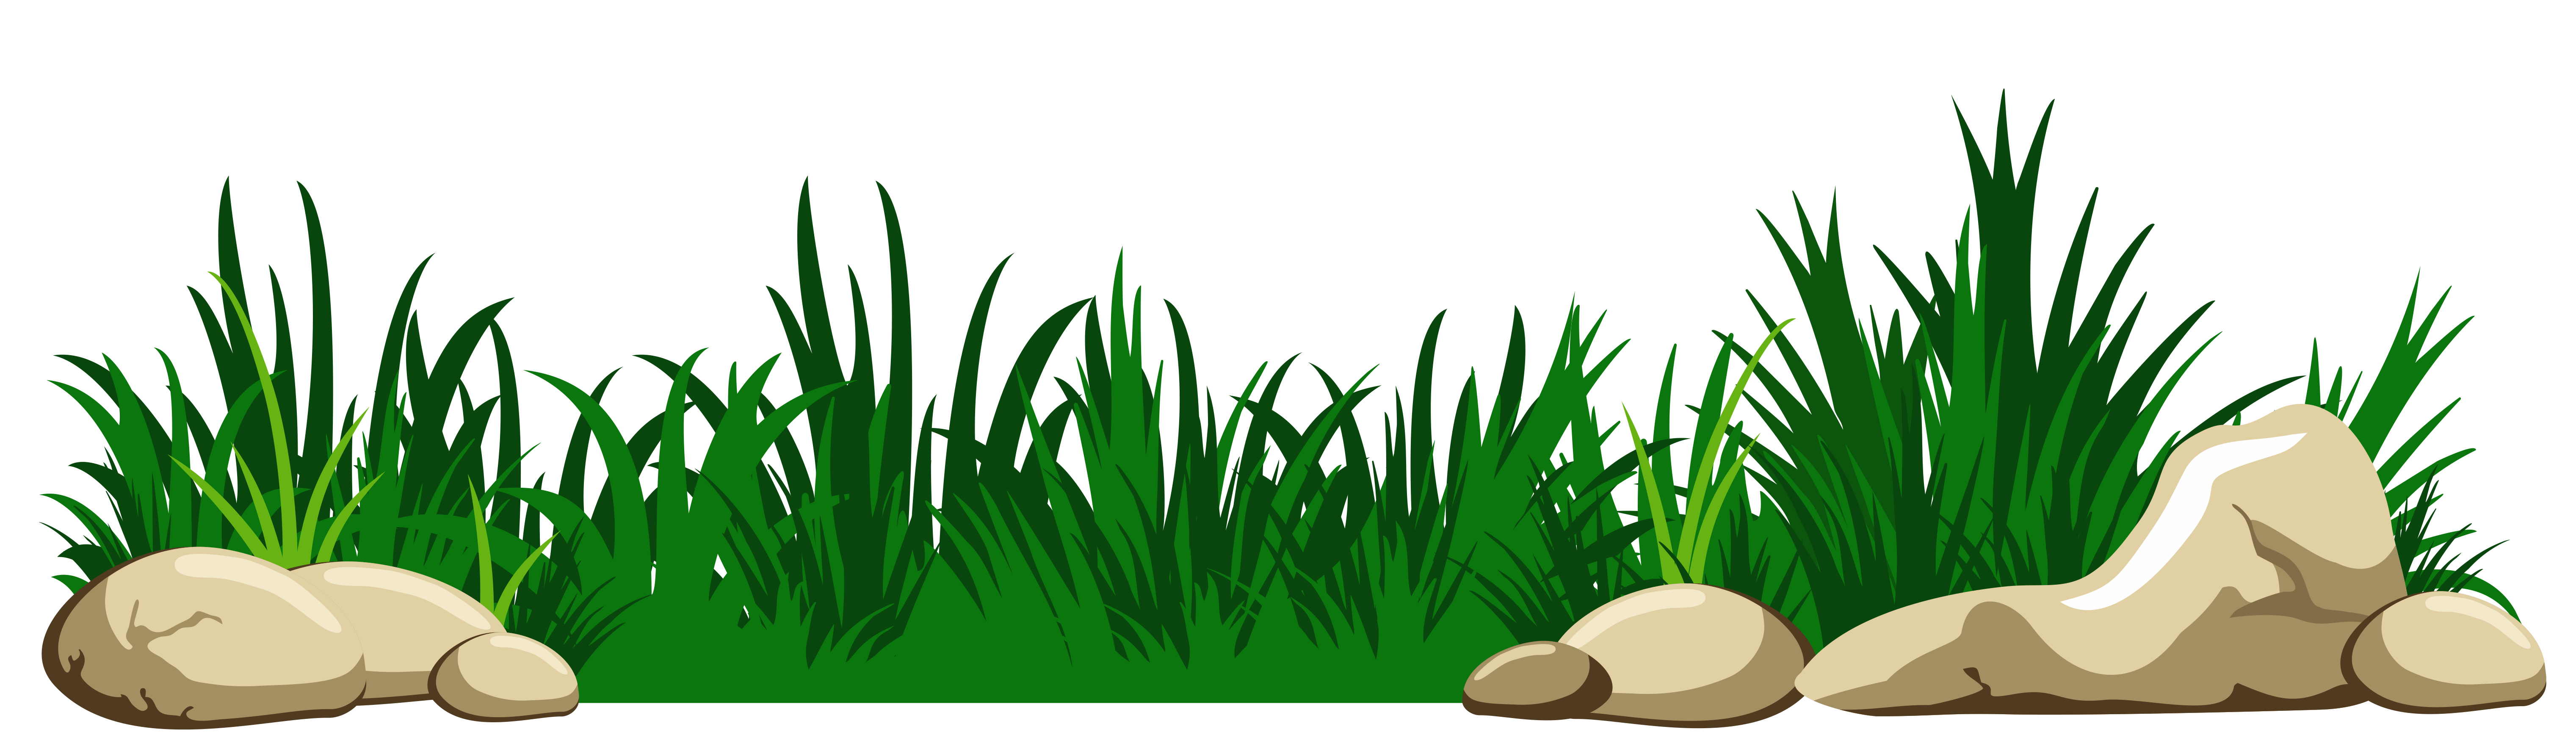 Fish tank plants clipart picture royalty free download Grass with Rocks Transparent PNG Clipart picture royalty free download